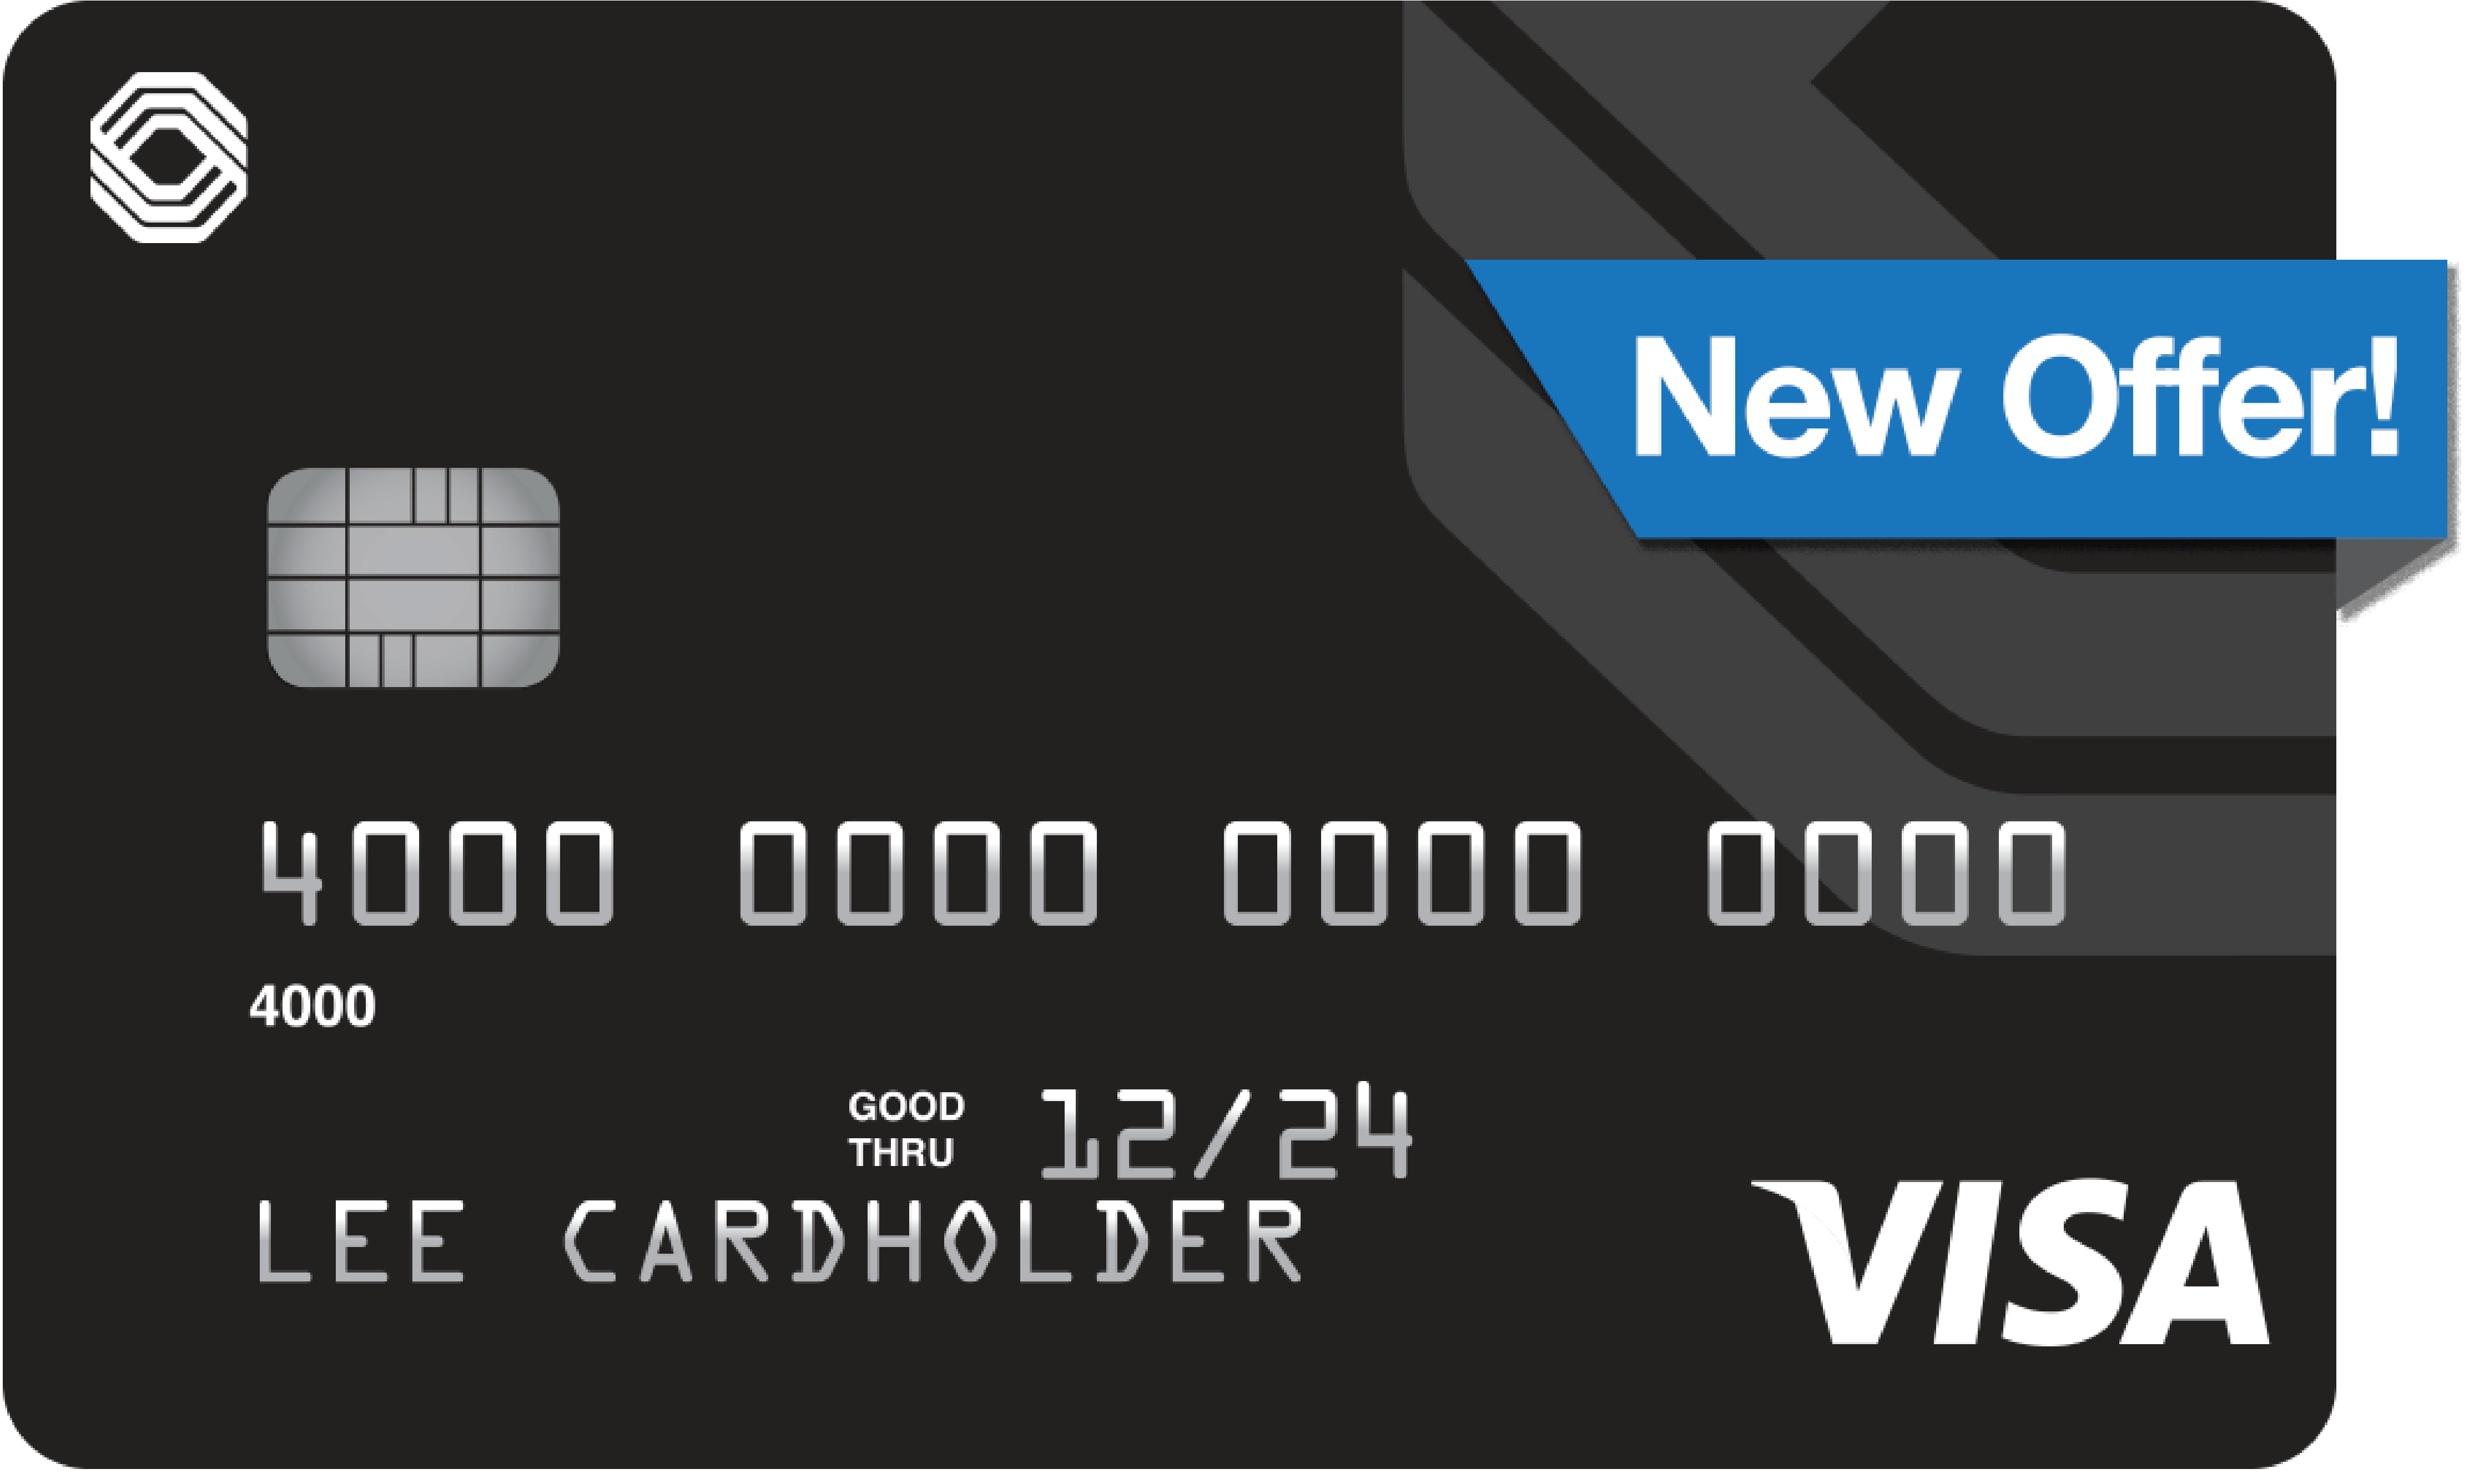 visa platinum - Total Visa Unsecured Credit Card